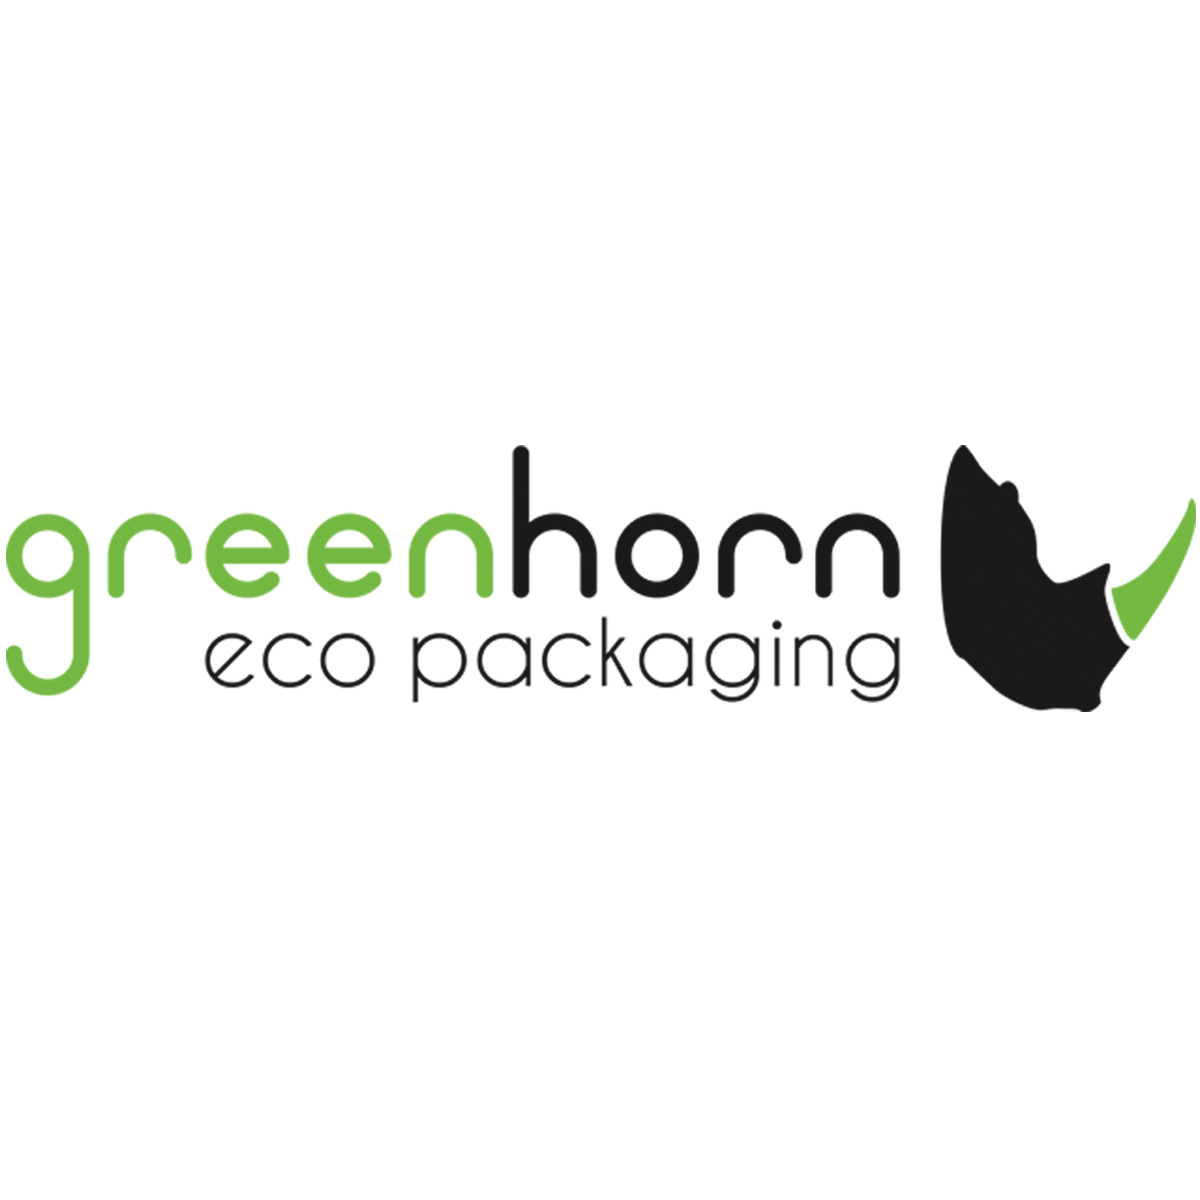 Greenhorn Ecopackaging